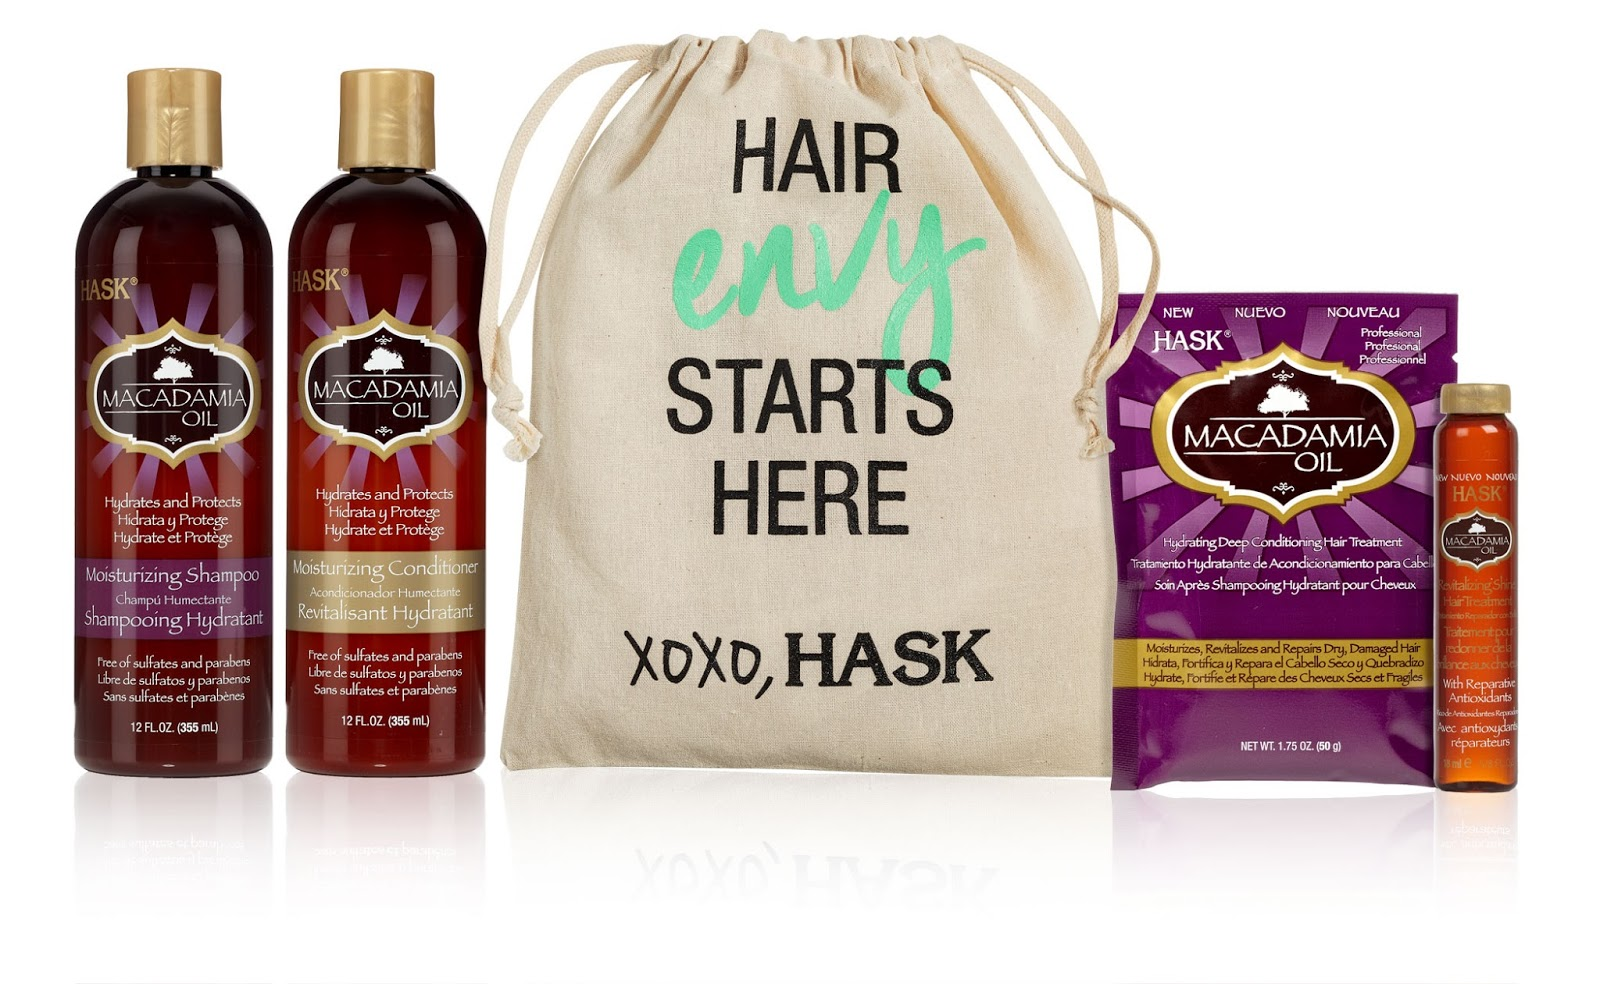 Macadamia oil hair products reviews